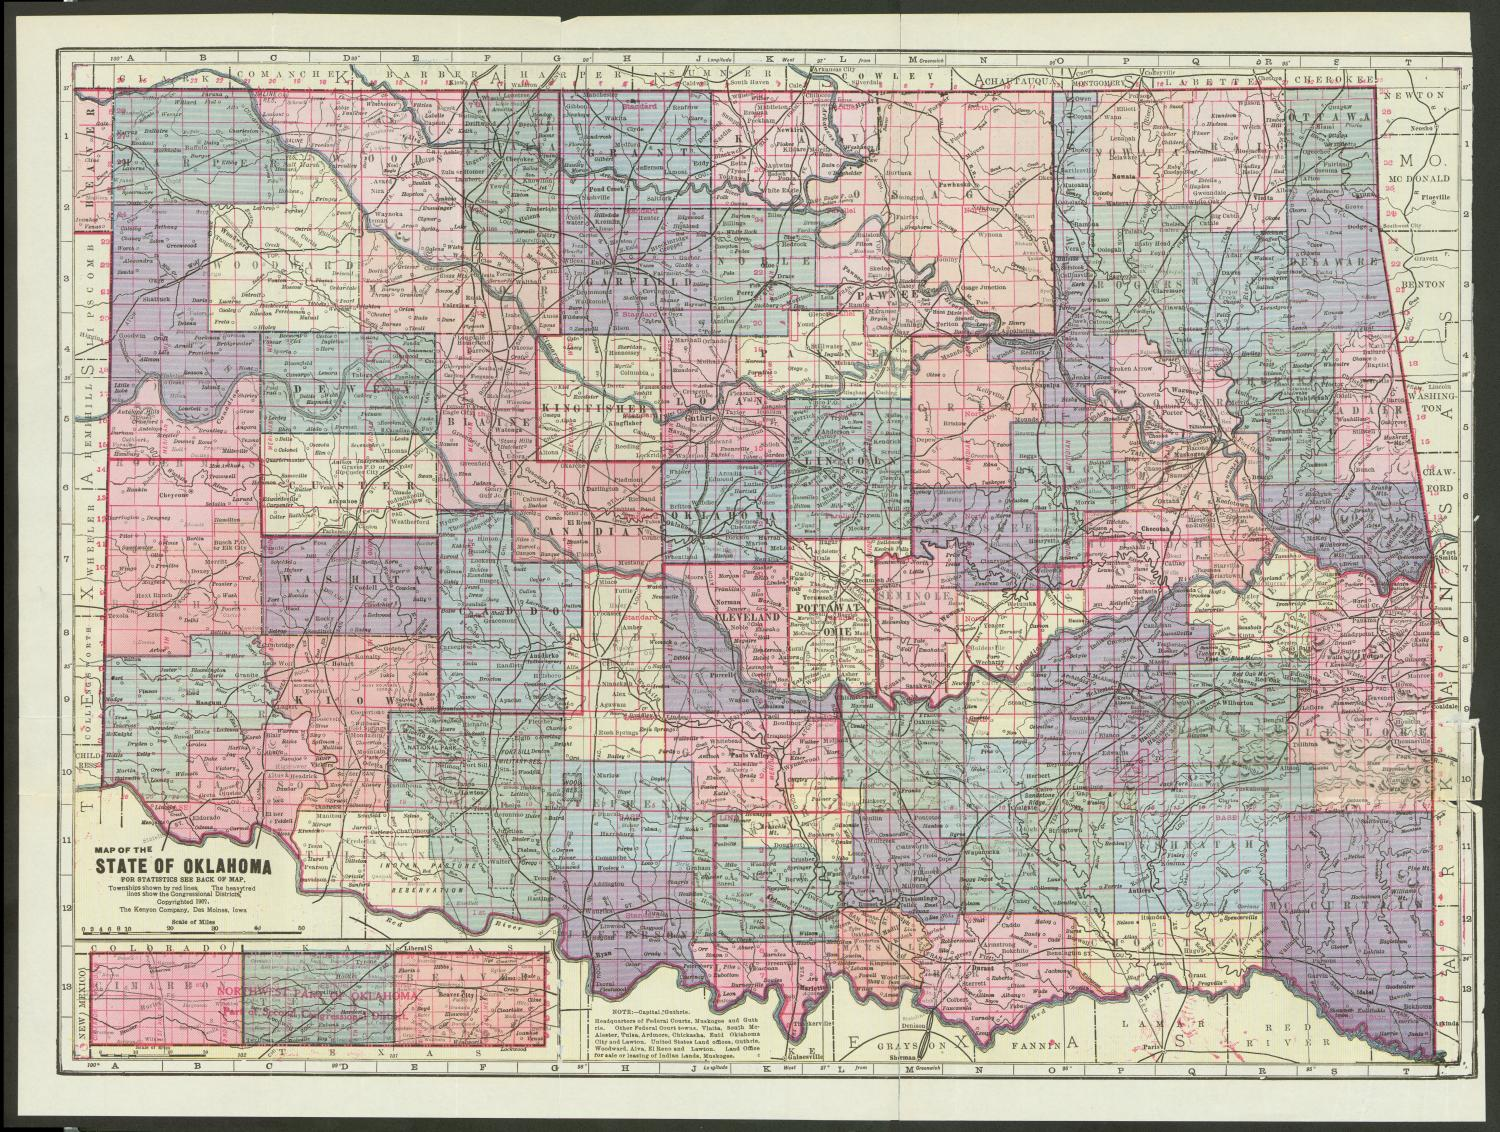 "Map of the State of Oklahoma, Color map of Oklahoma and Indian Territory (the area proposed to become the state of Oklahoma) and surrounding areas to accompany the 1907 census bulletin. The panhandle section of the state is included as an inset in the lower-left corner. Counties are shaded in various colors and red hatch marks and numbers denote townships and Congressional Districts. Towns, bodies of water, geographic features and transportation routes are marked. There is an index on the back of the map containing ""Location of Towns and Cities in Oklahoma According to State Census of 1907 and Other Reliable Sources."","